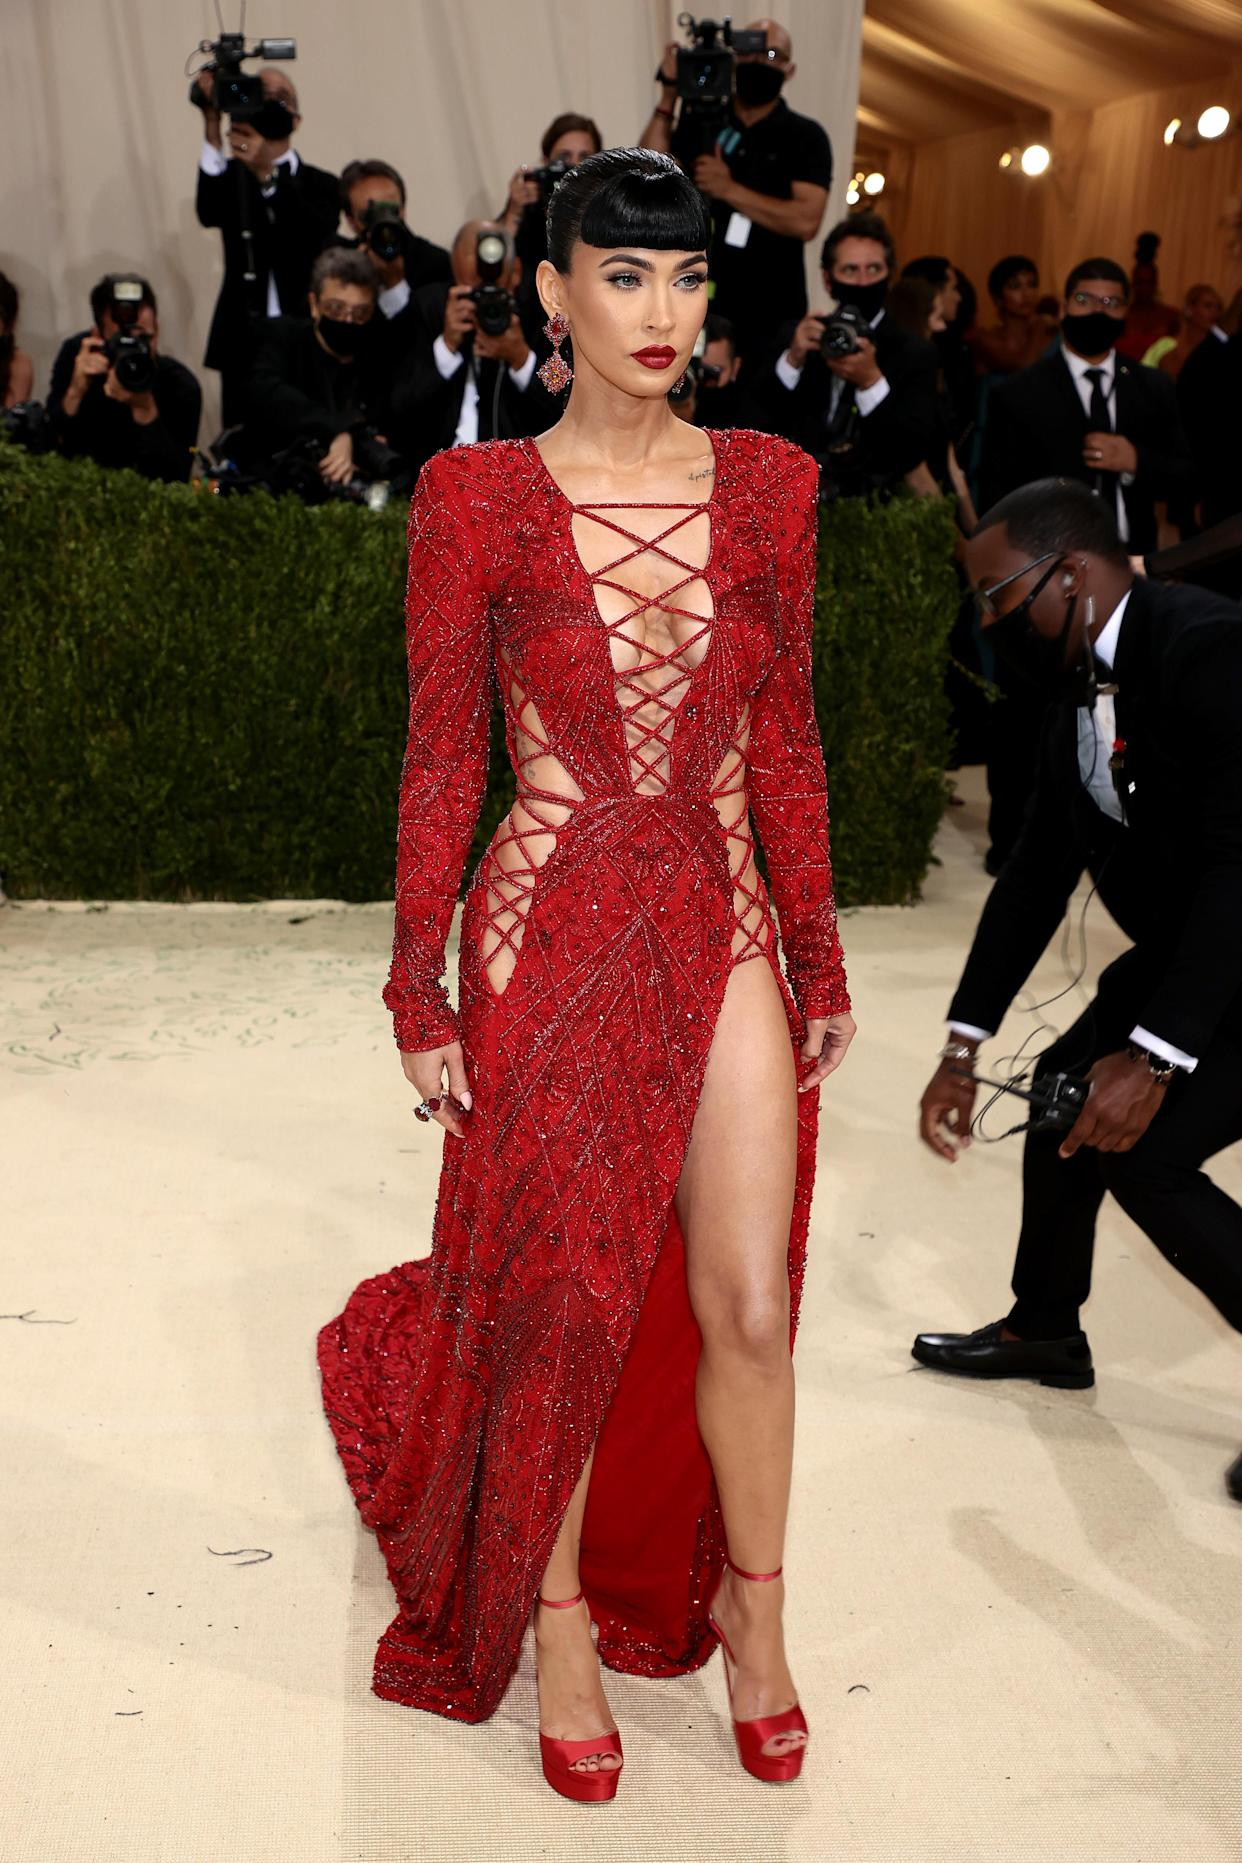 Megan Fox attends The 2021 Met Gala Celebrating In America: A Lexicon Of Fashion at Metropolitan Museum of Art on September 13, 2021 in New York City. (Getty Images)